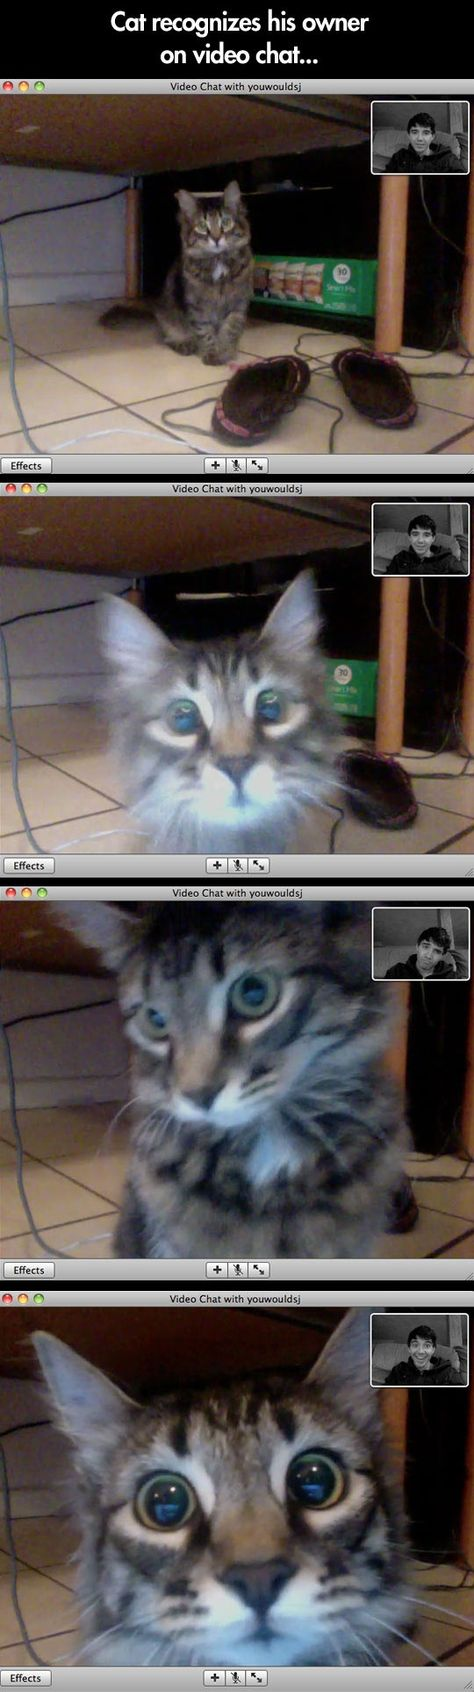 Crazy Cat Lady Internet Dating Video Chat